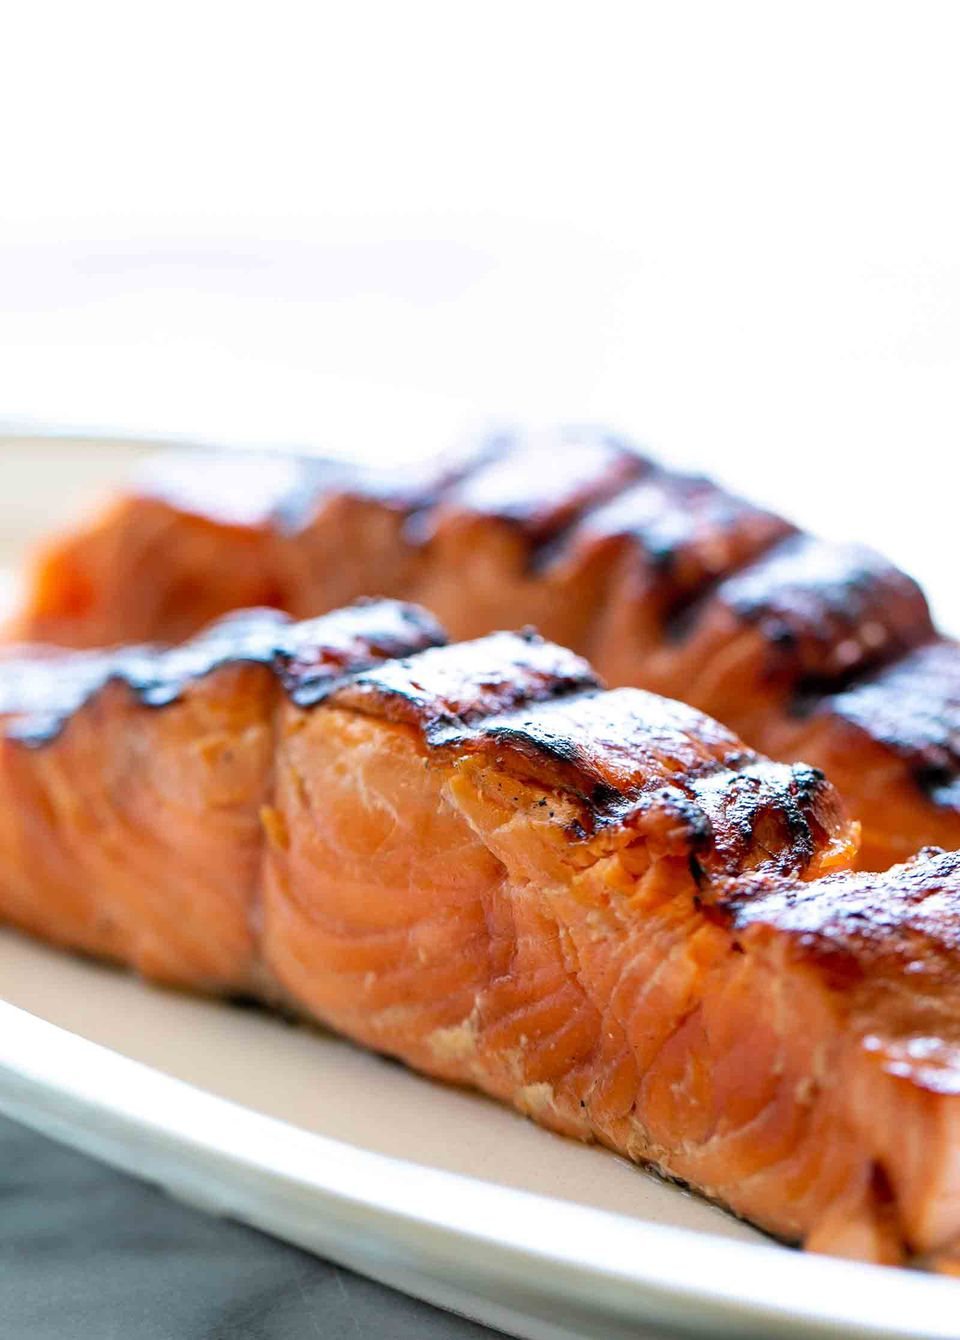 Grilled salmon on a plate, ready to eat